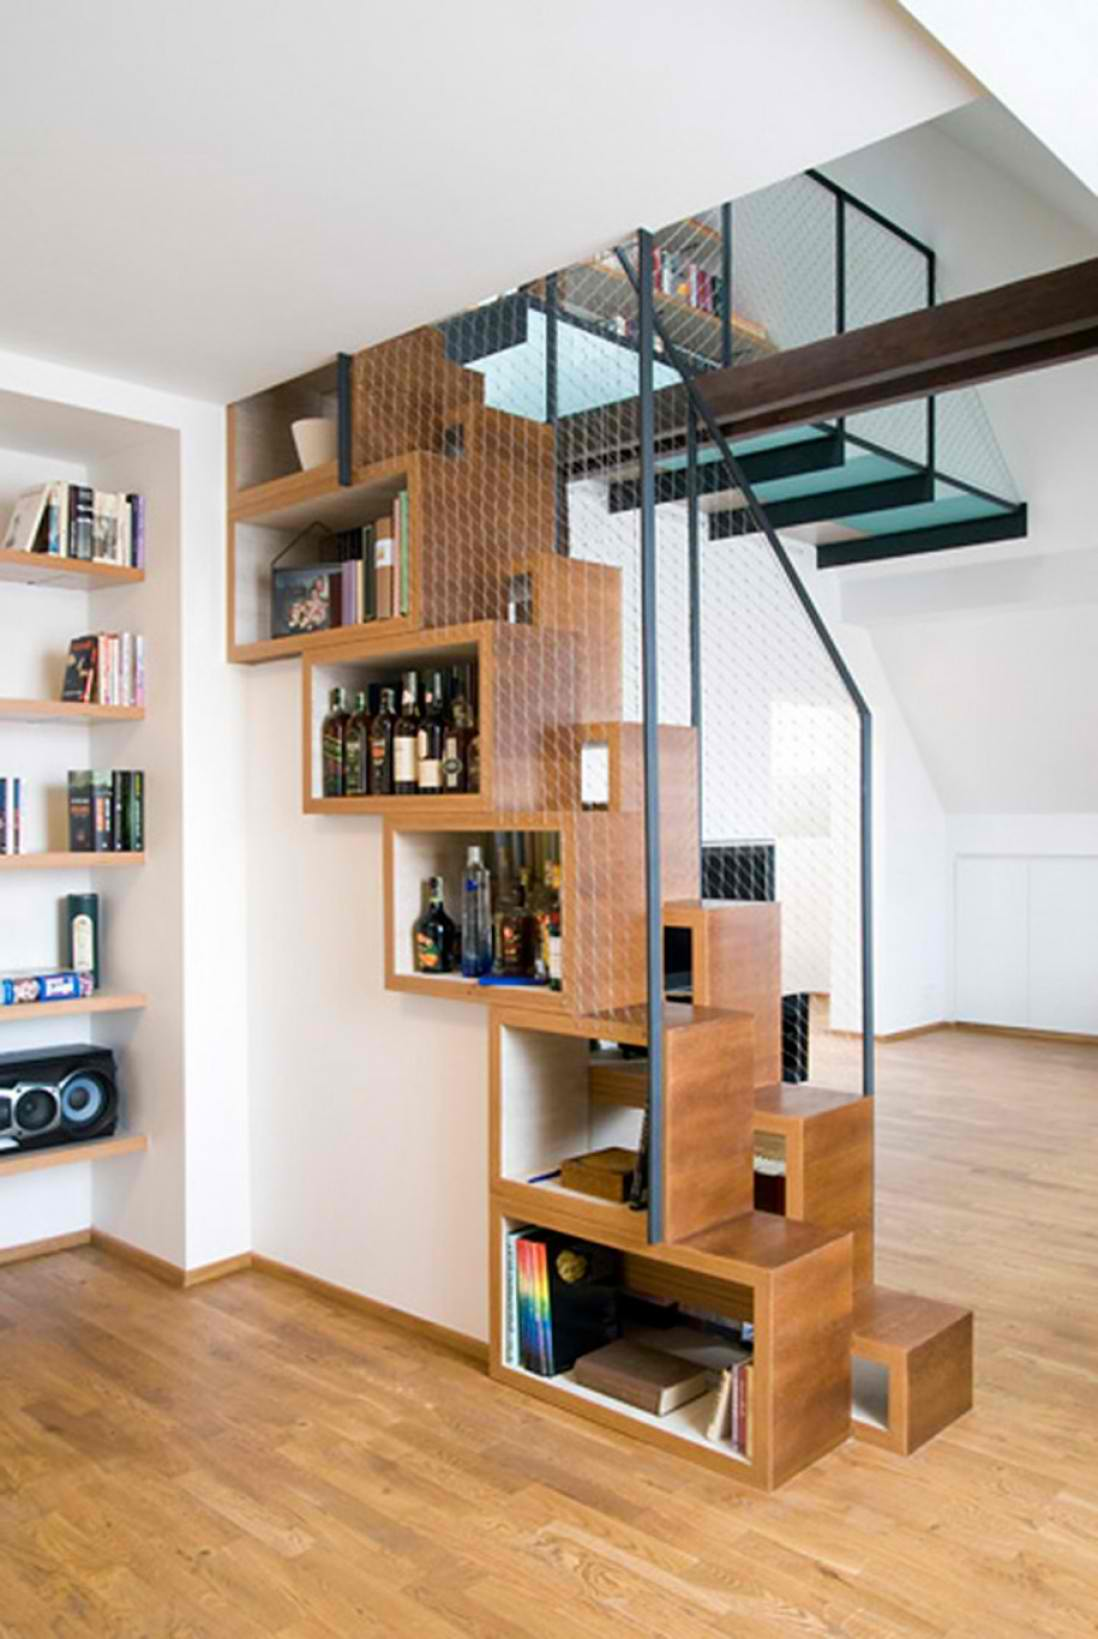 7 Smart Design Solutions For Small Spaces Gawin: home interior design for small space